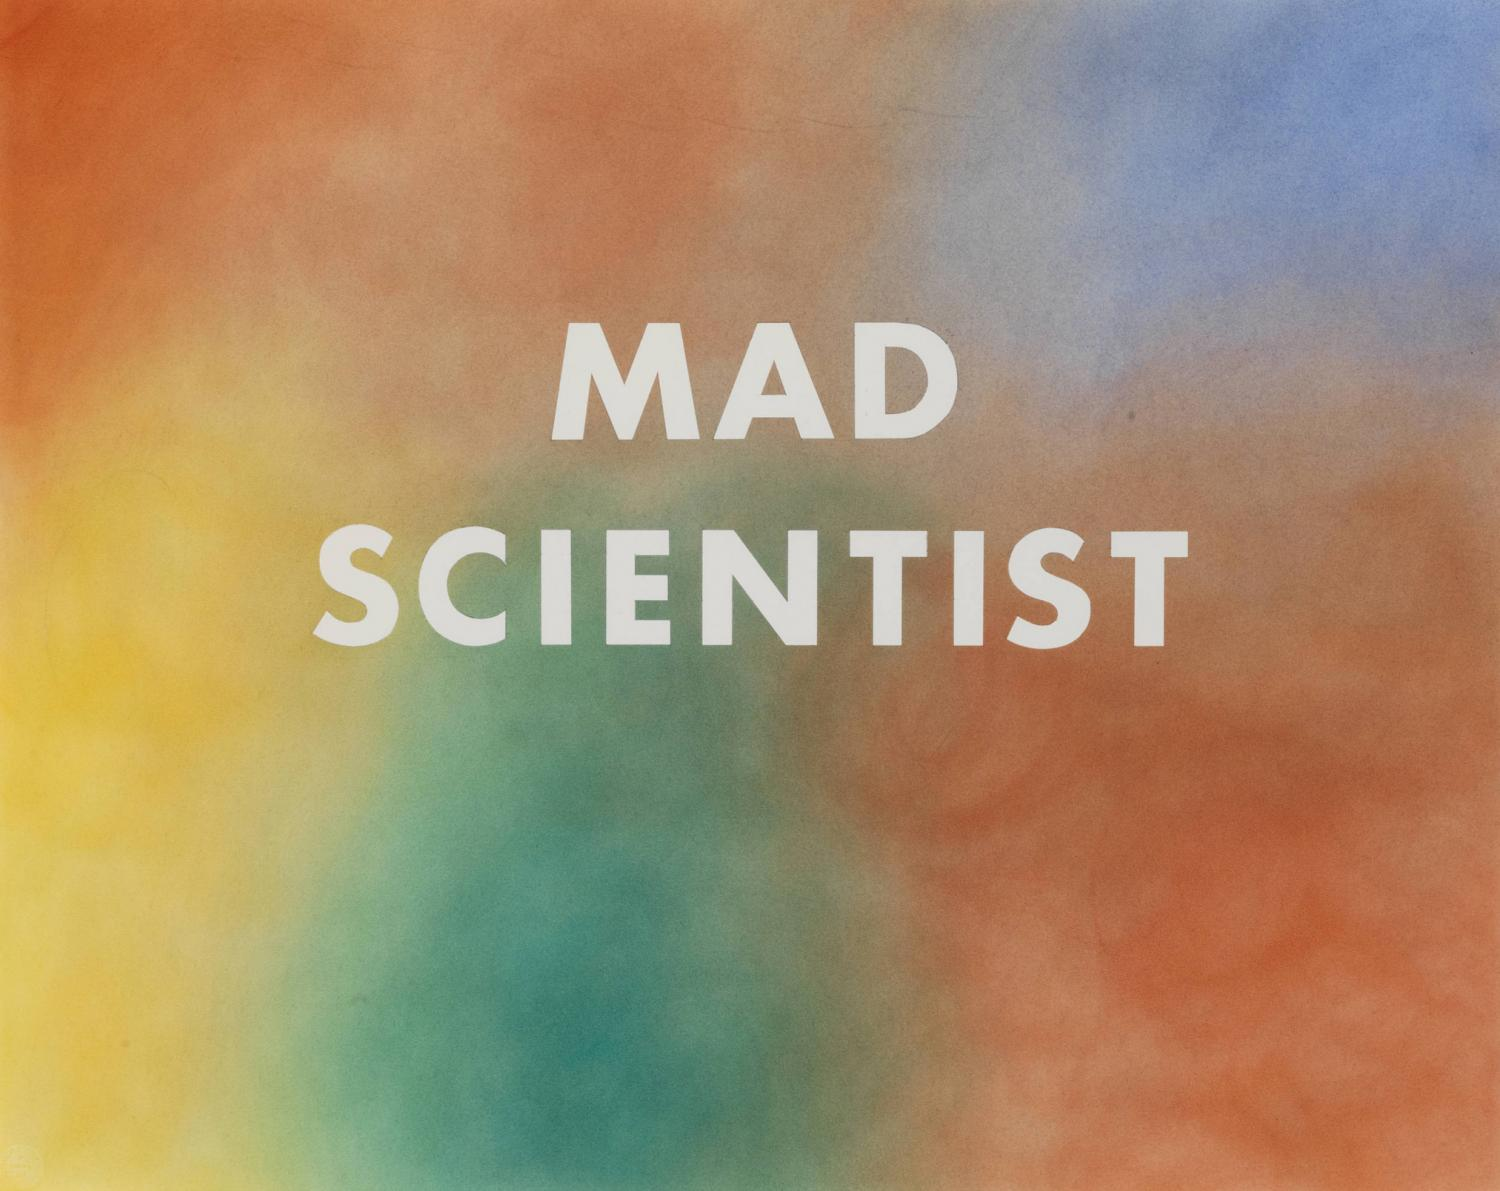 eccentric artists and mad scientists essay However, american b-movies, comics, and pulp fiction were overrun with evil robots, monsters from space, radioactive mutants—and mad scientists all of this affected how americans regarded scientific education.